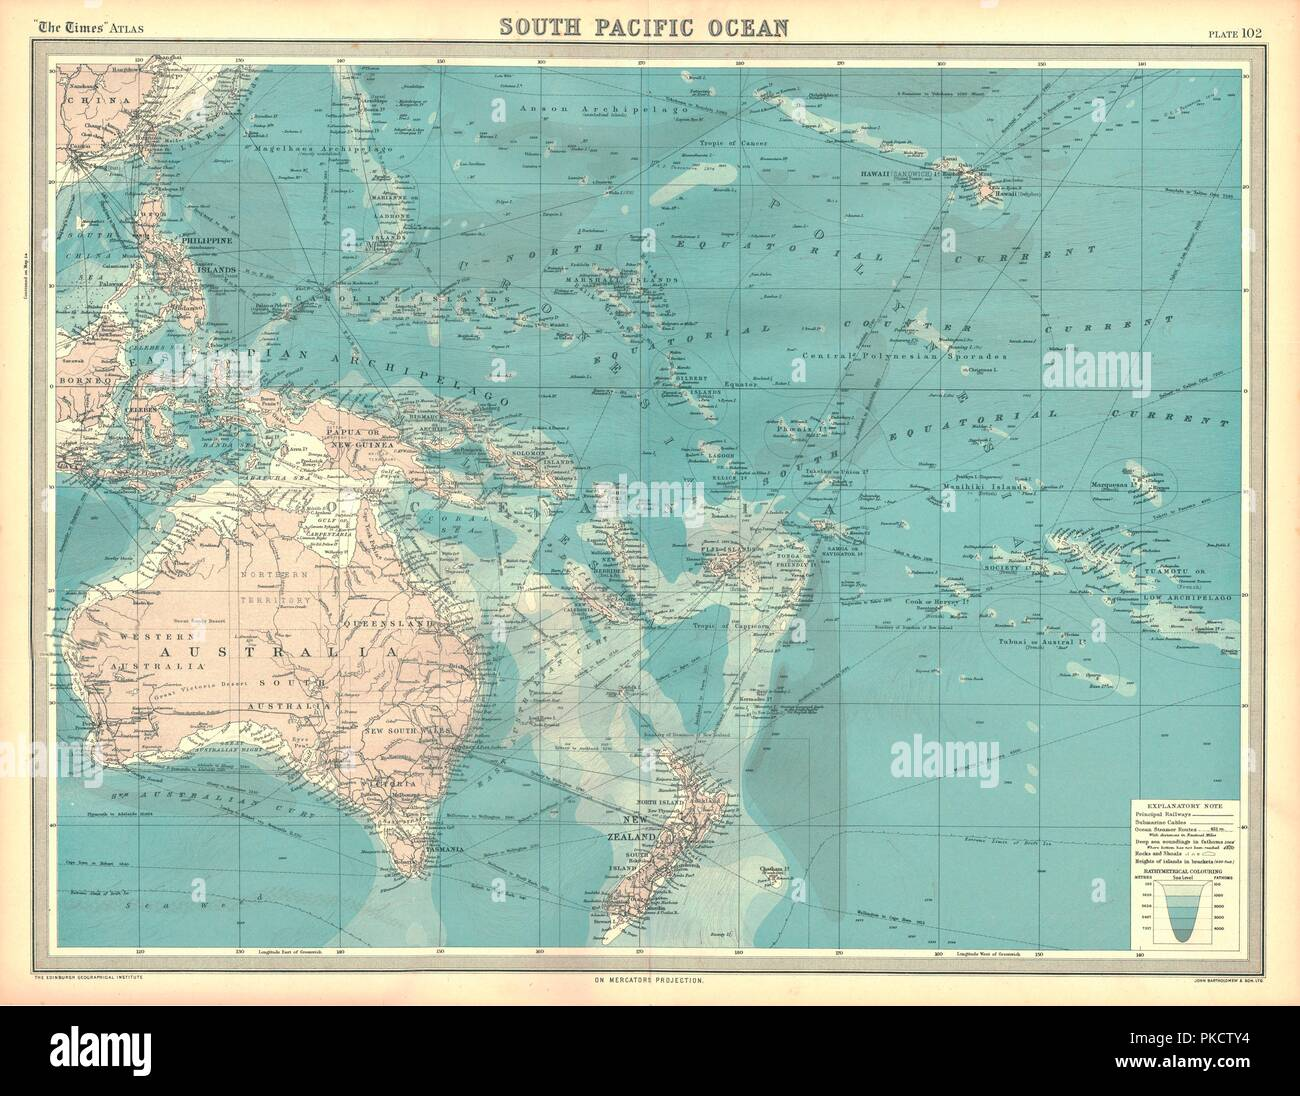 South pacific ocean map stock photos south pacific ocean map stock map of the south pacific ocean map showing the philippines indonesia papua new gumiabroncs Choice Image